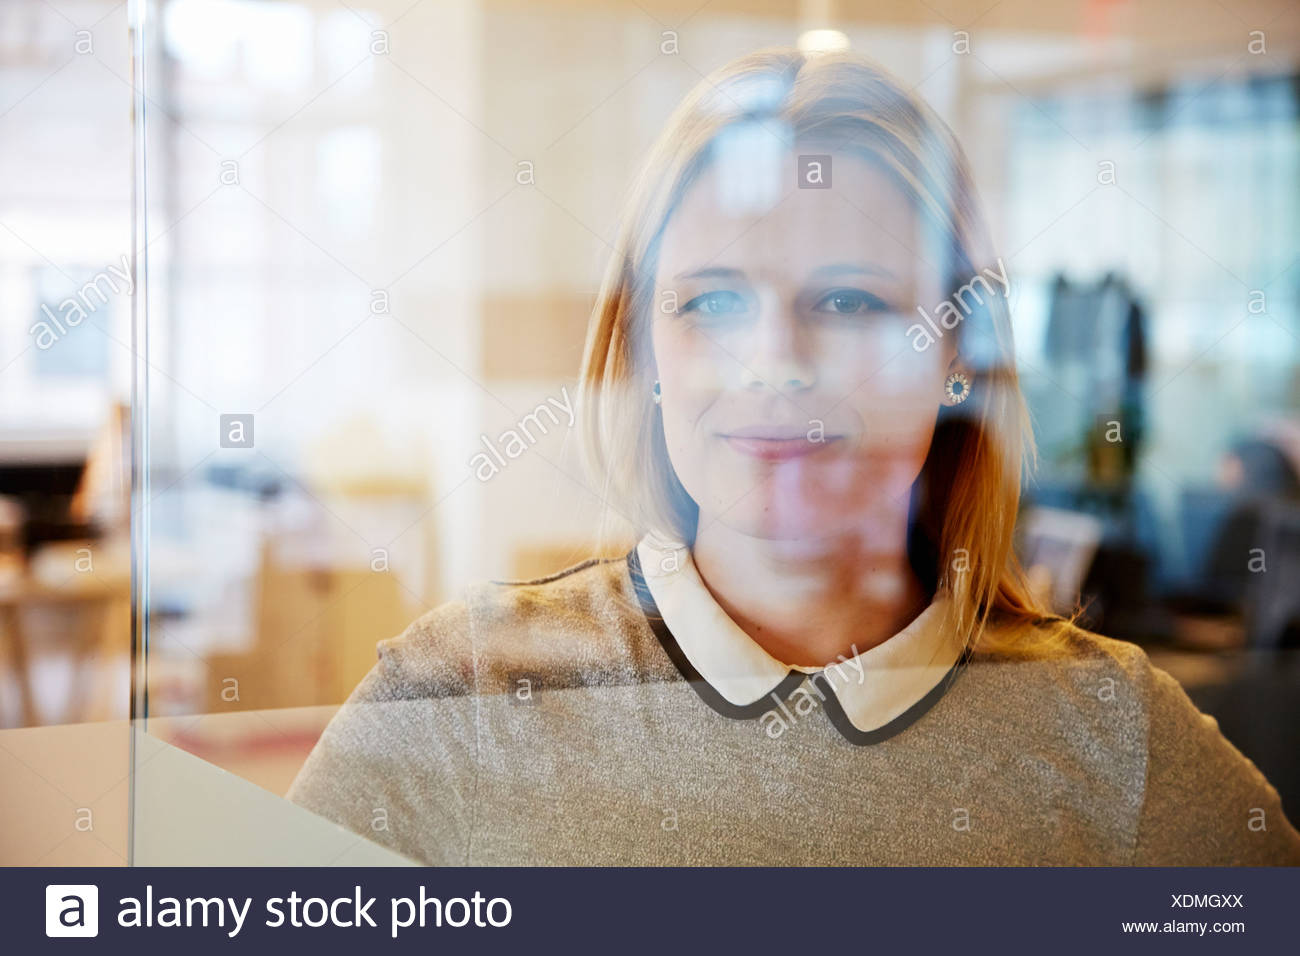 View through glass of female office worker - Stock Image